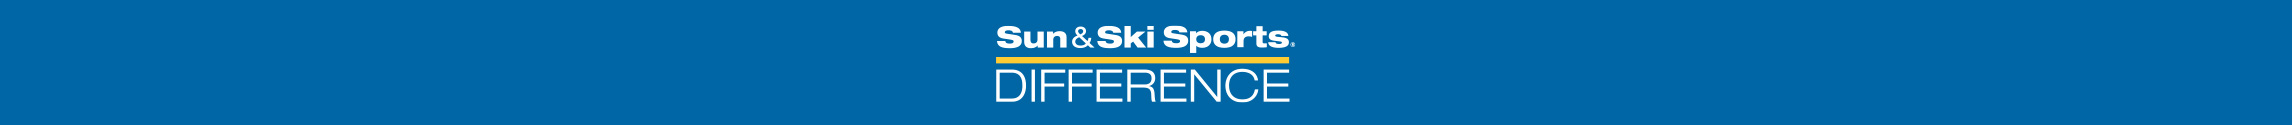 Sun and Ski Sports Difference